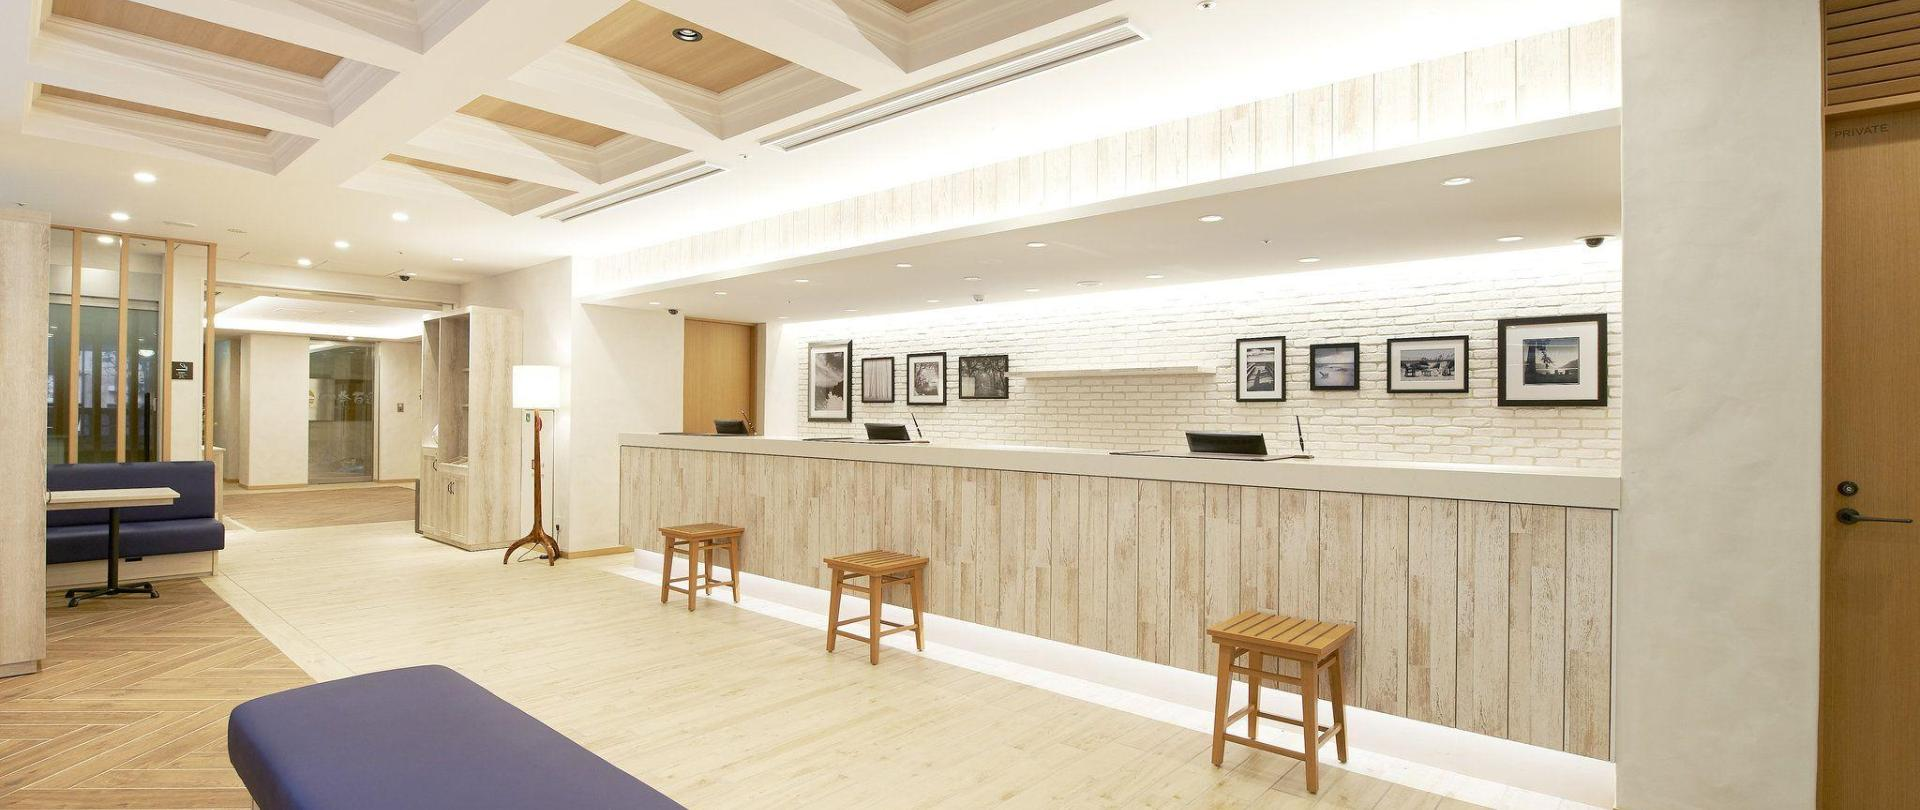 kinshicho_front-lobby_001.jpg